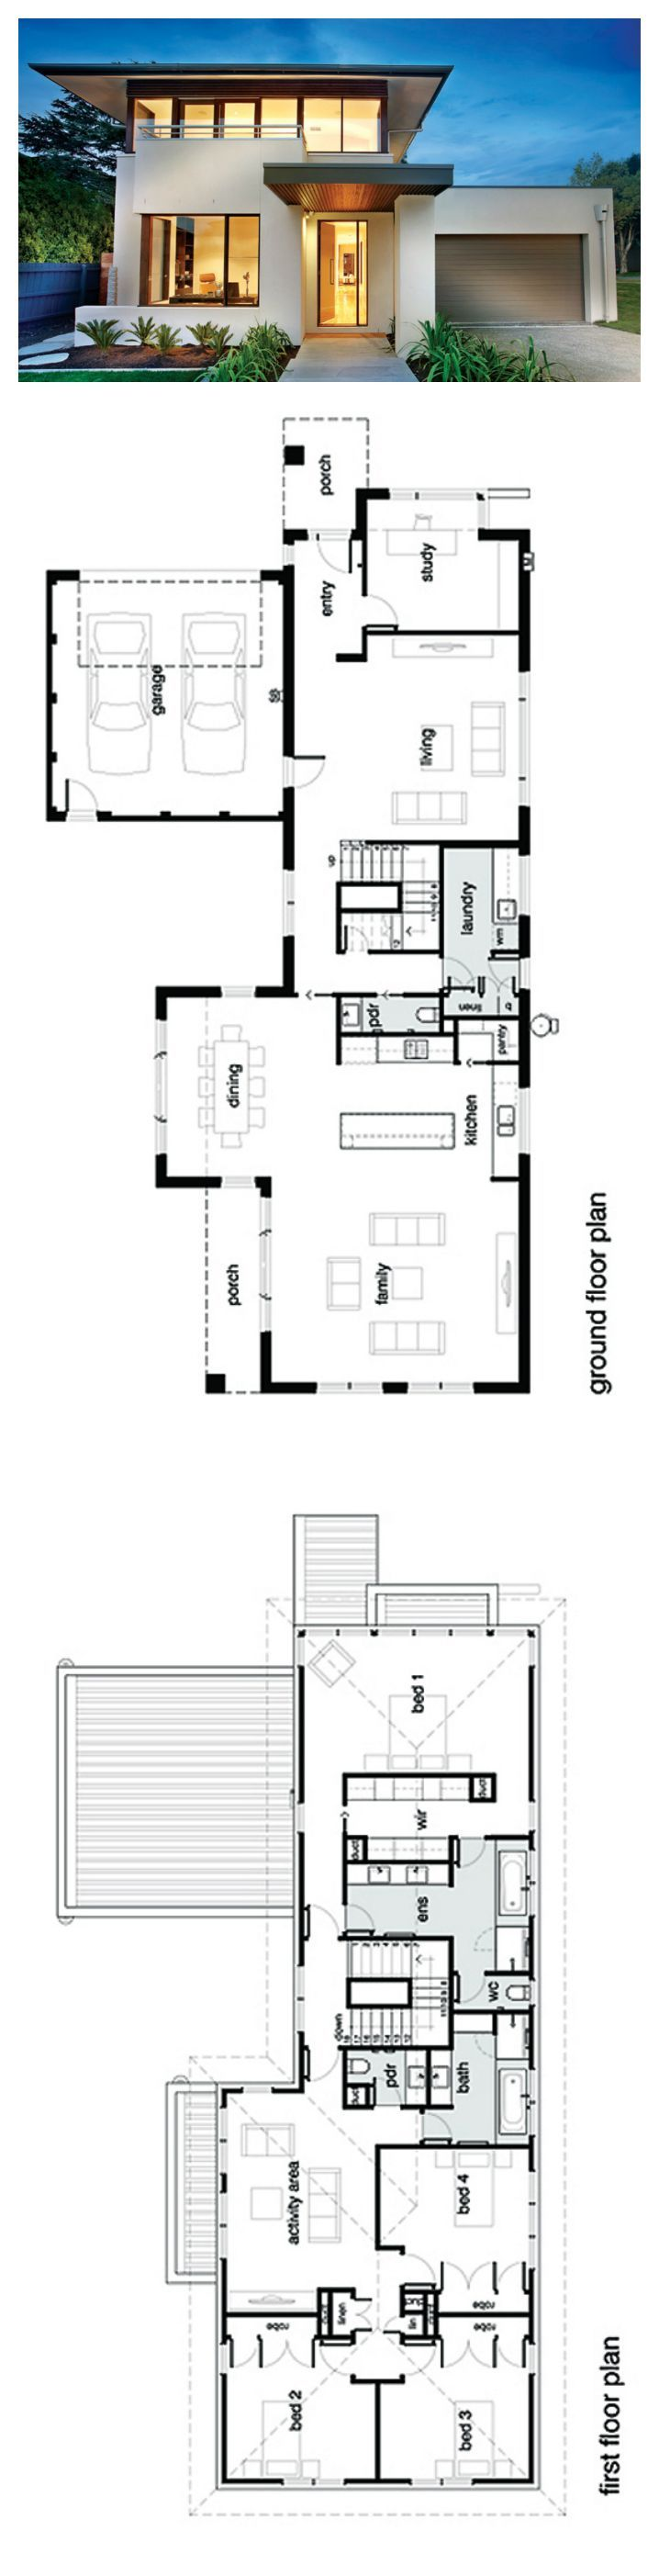 Modern Home Plans contemporary adobe house plan Plan 496 18 3584 Sf 4 Bed Study 25 Bath Modern House Plansmodern